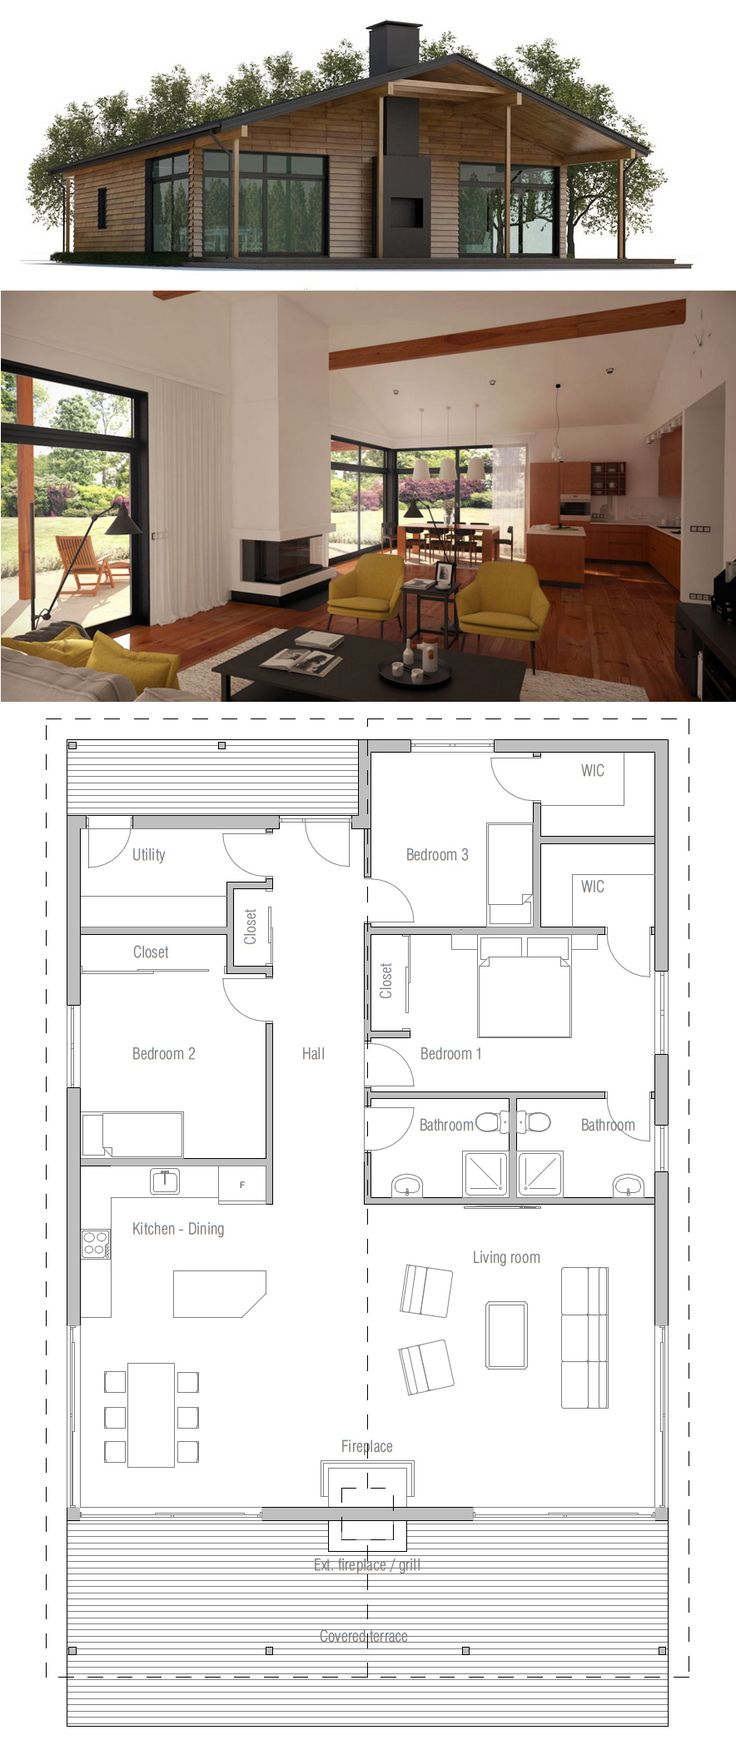 We would just need a little more space for the office and a studio space/my office (I need space for my art supplies and education books/papers/materials) But essentially if this floor plan was stretched a bit and maybe one room added, we'd be good.